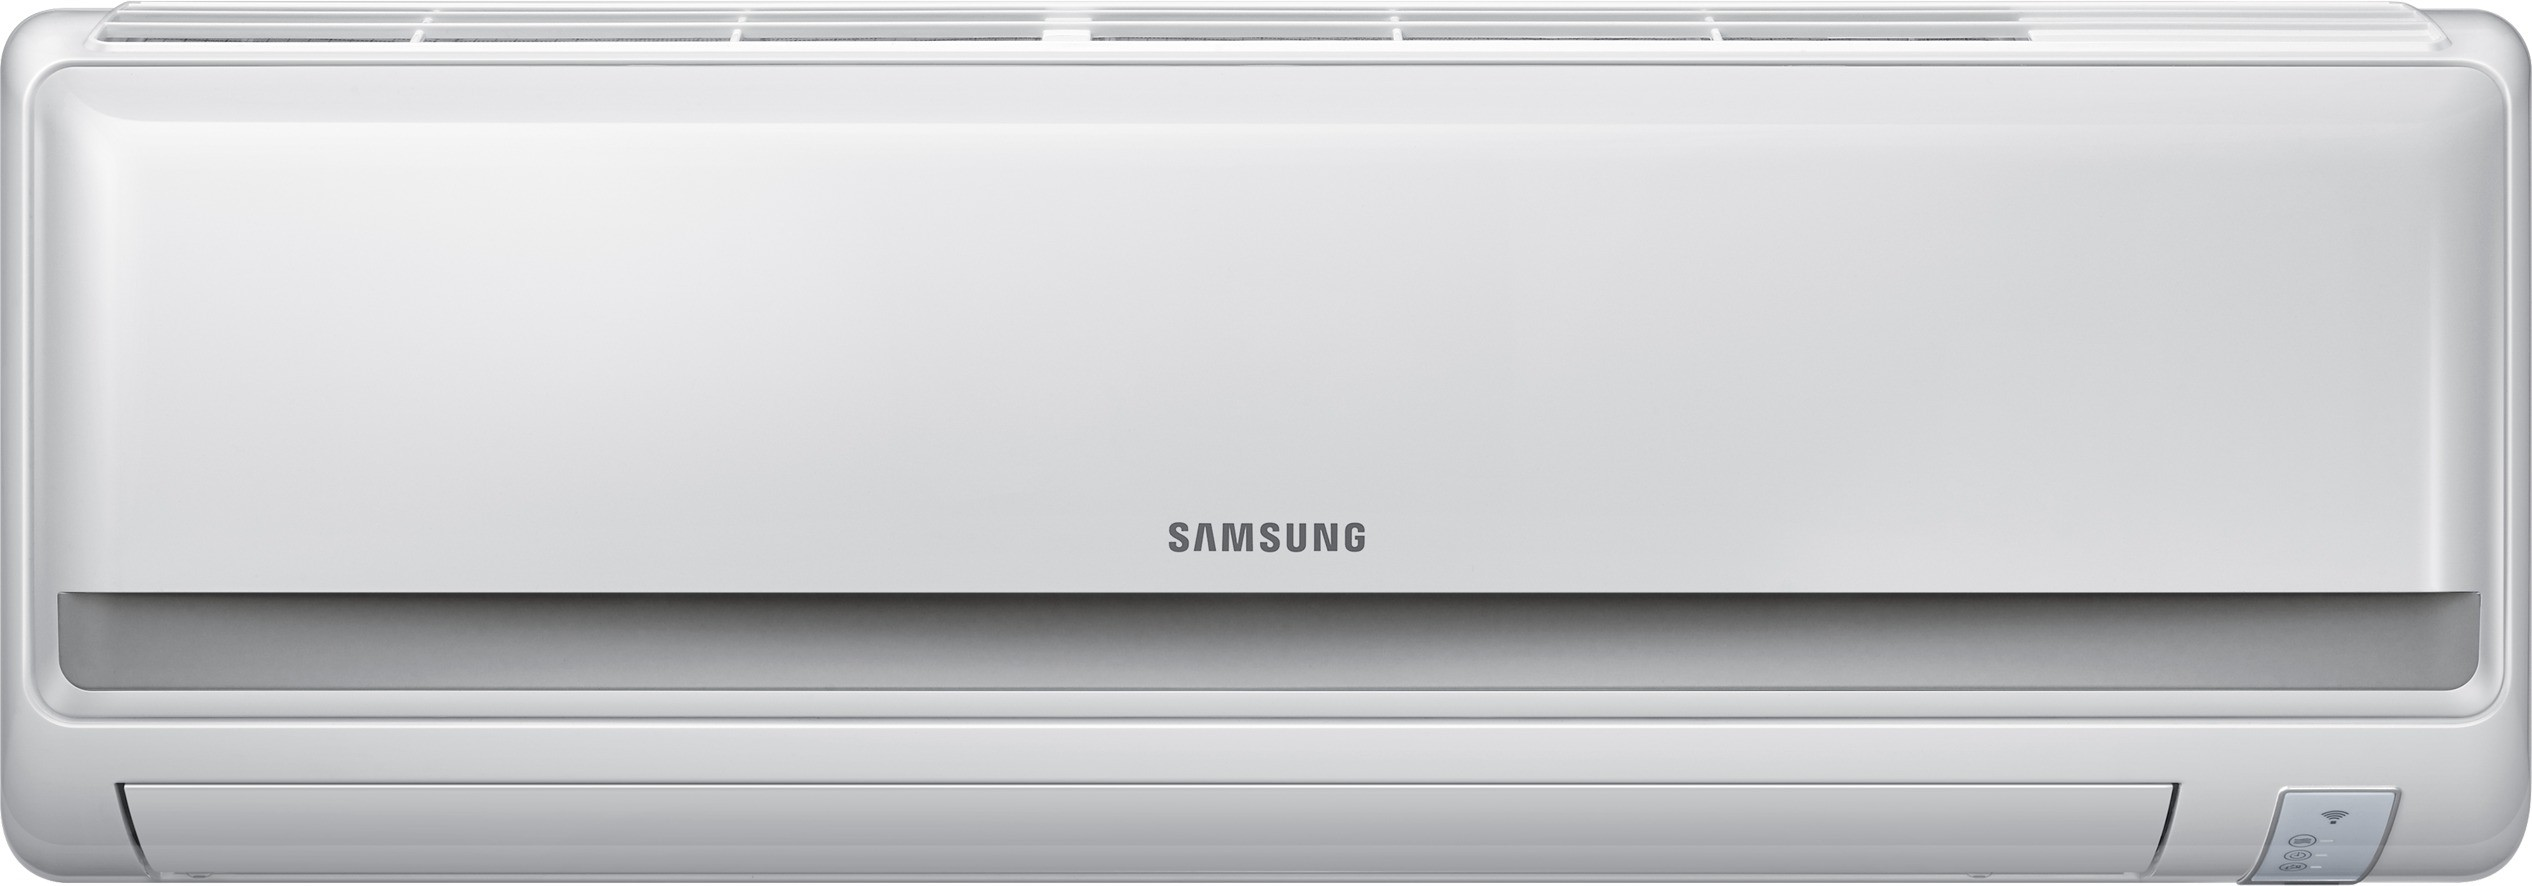 Deals - Noida - From ₹28,490 <br> Samsung ACs<br> Category - home_kitchen<br> Business - Flipkart.com